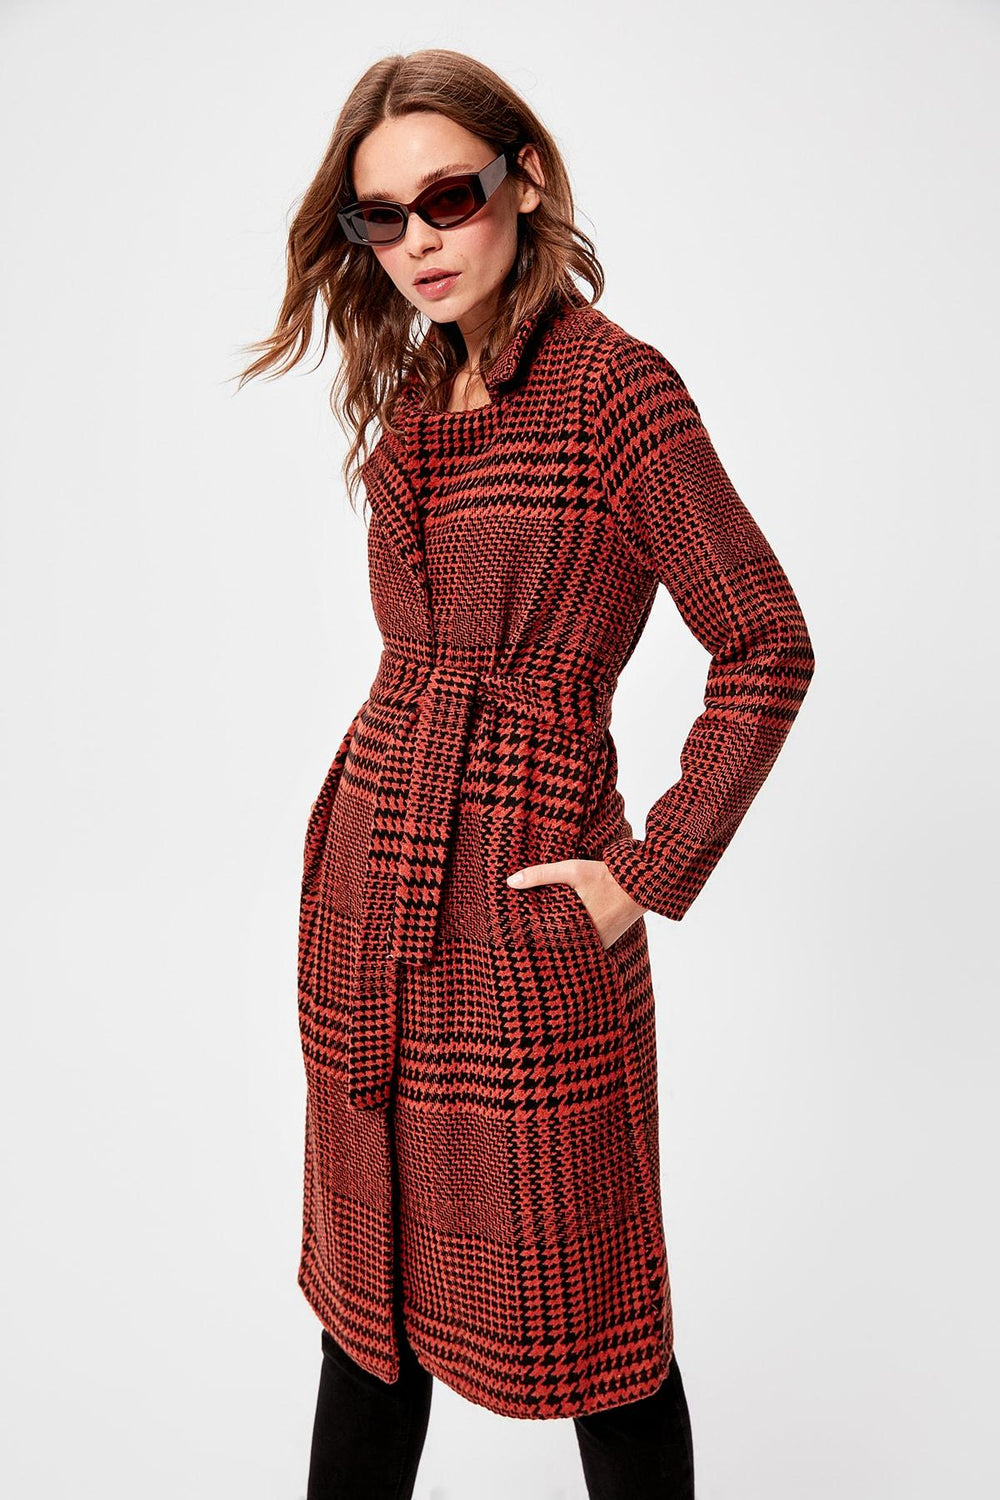 Cinnamon Arched Pattern Stamp Coat - Top Maxy